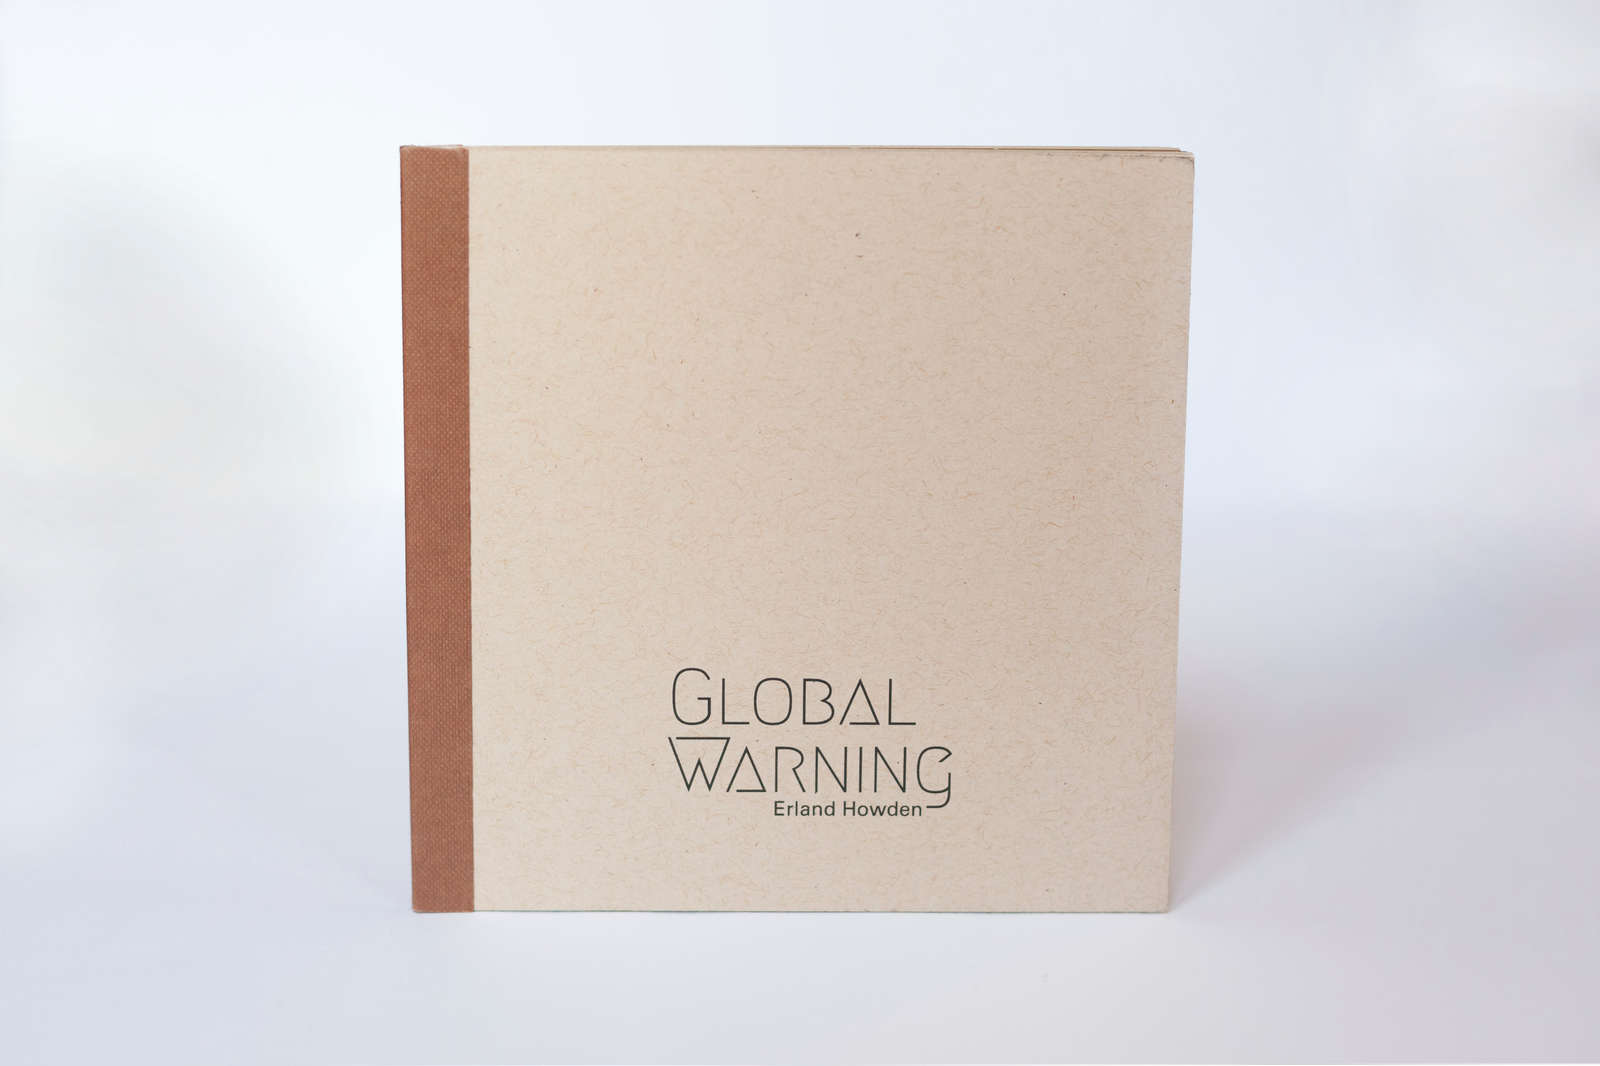 Global Warning by Erland Howden